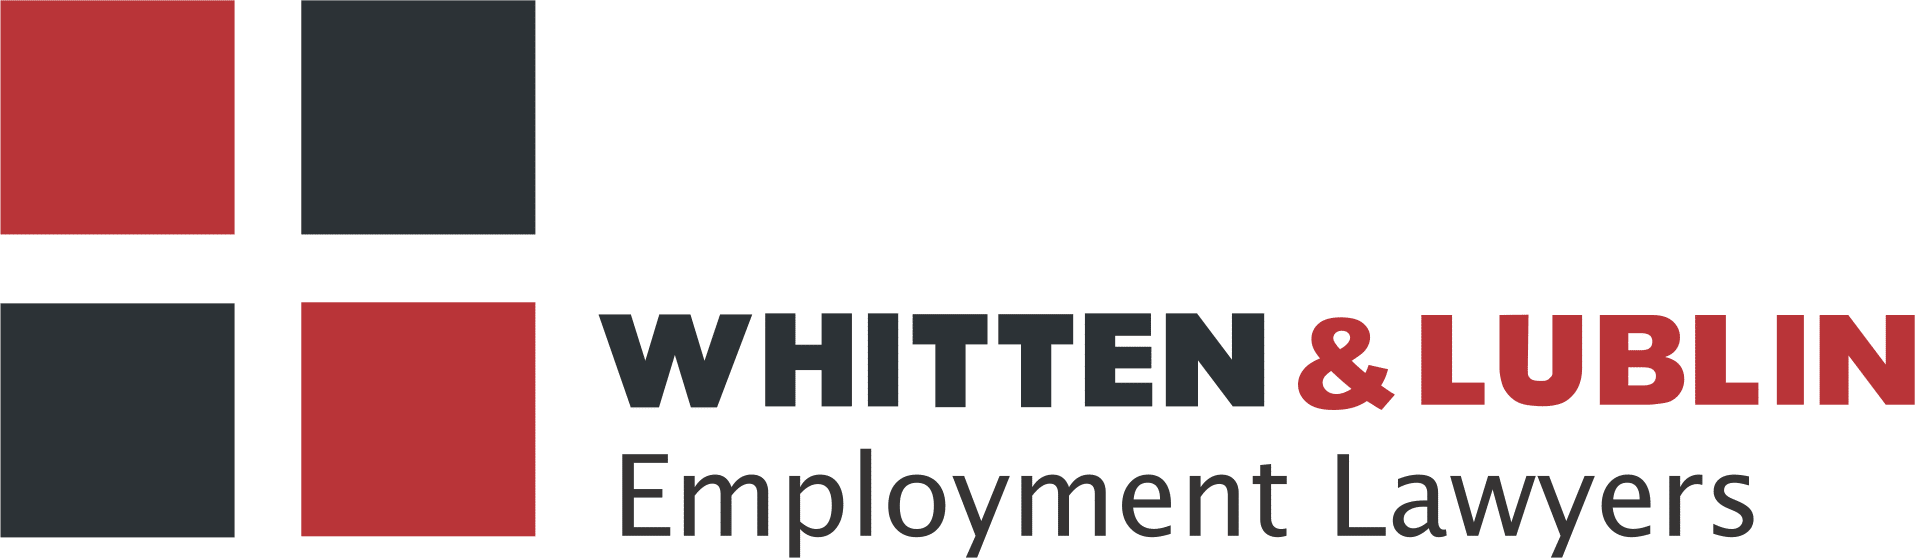 Employment Lawyer Toronto and Labour Lawyers Toronto | Whitten and Lublin